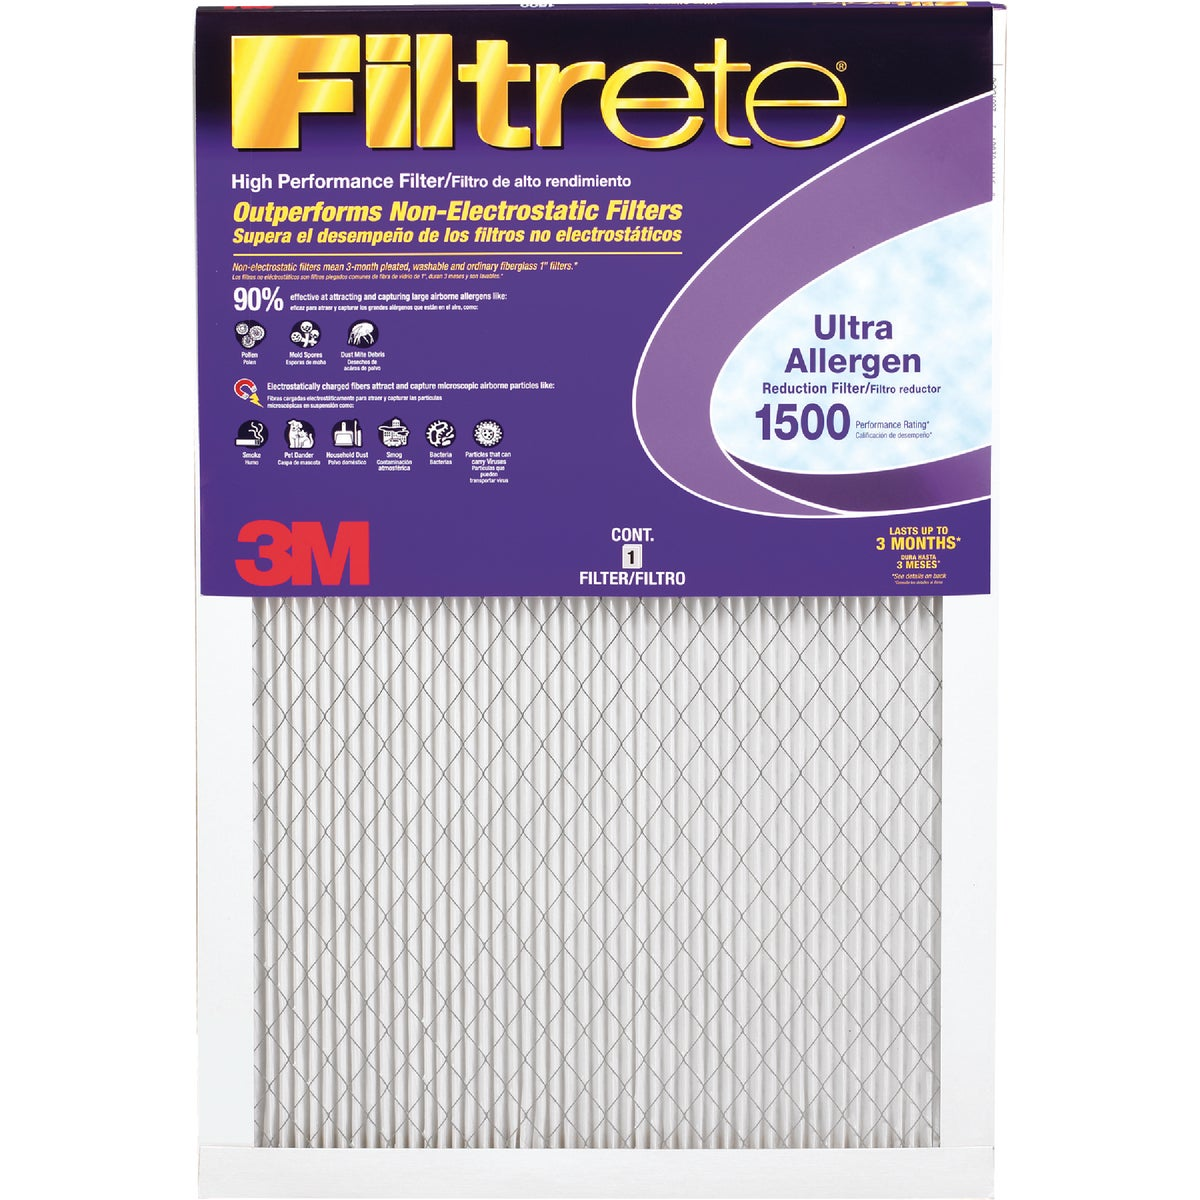 24X30X1 ALLERGEN FILTER - 2013DC-6 by 3m Co